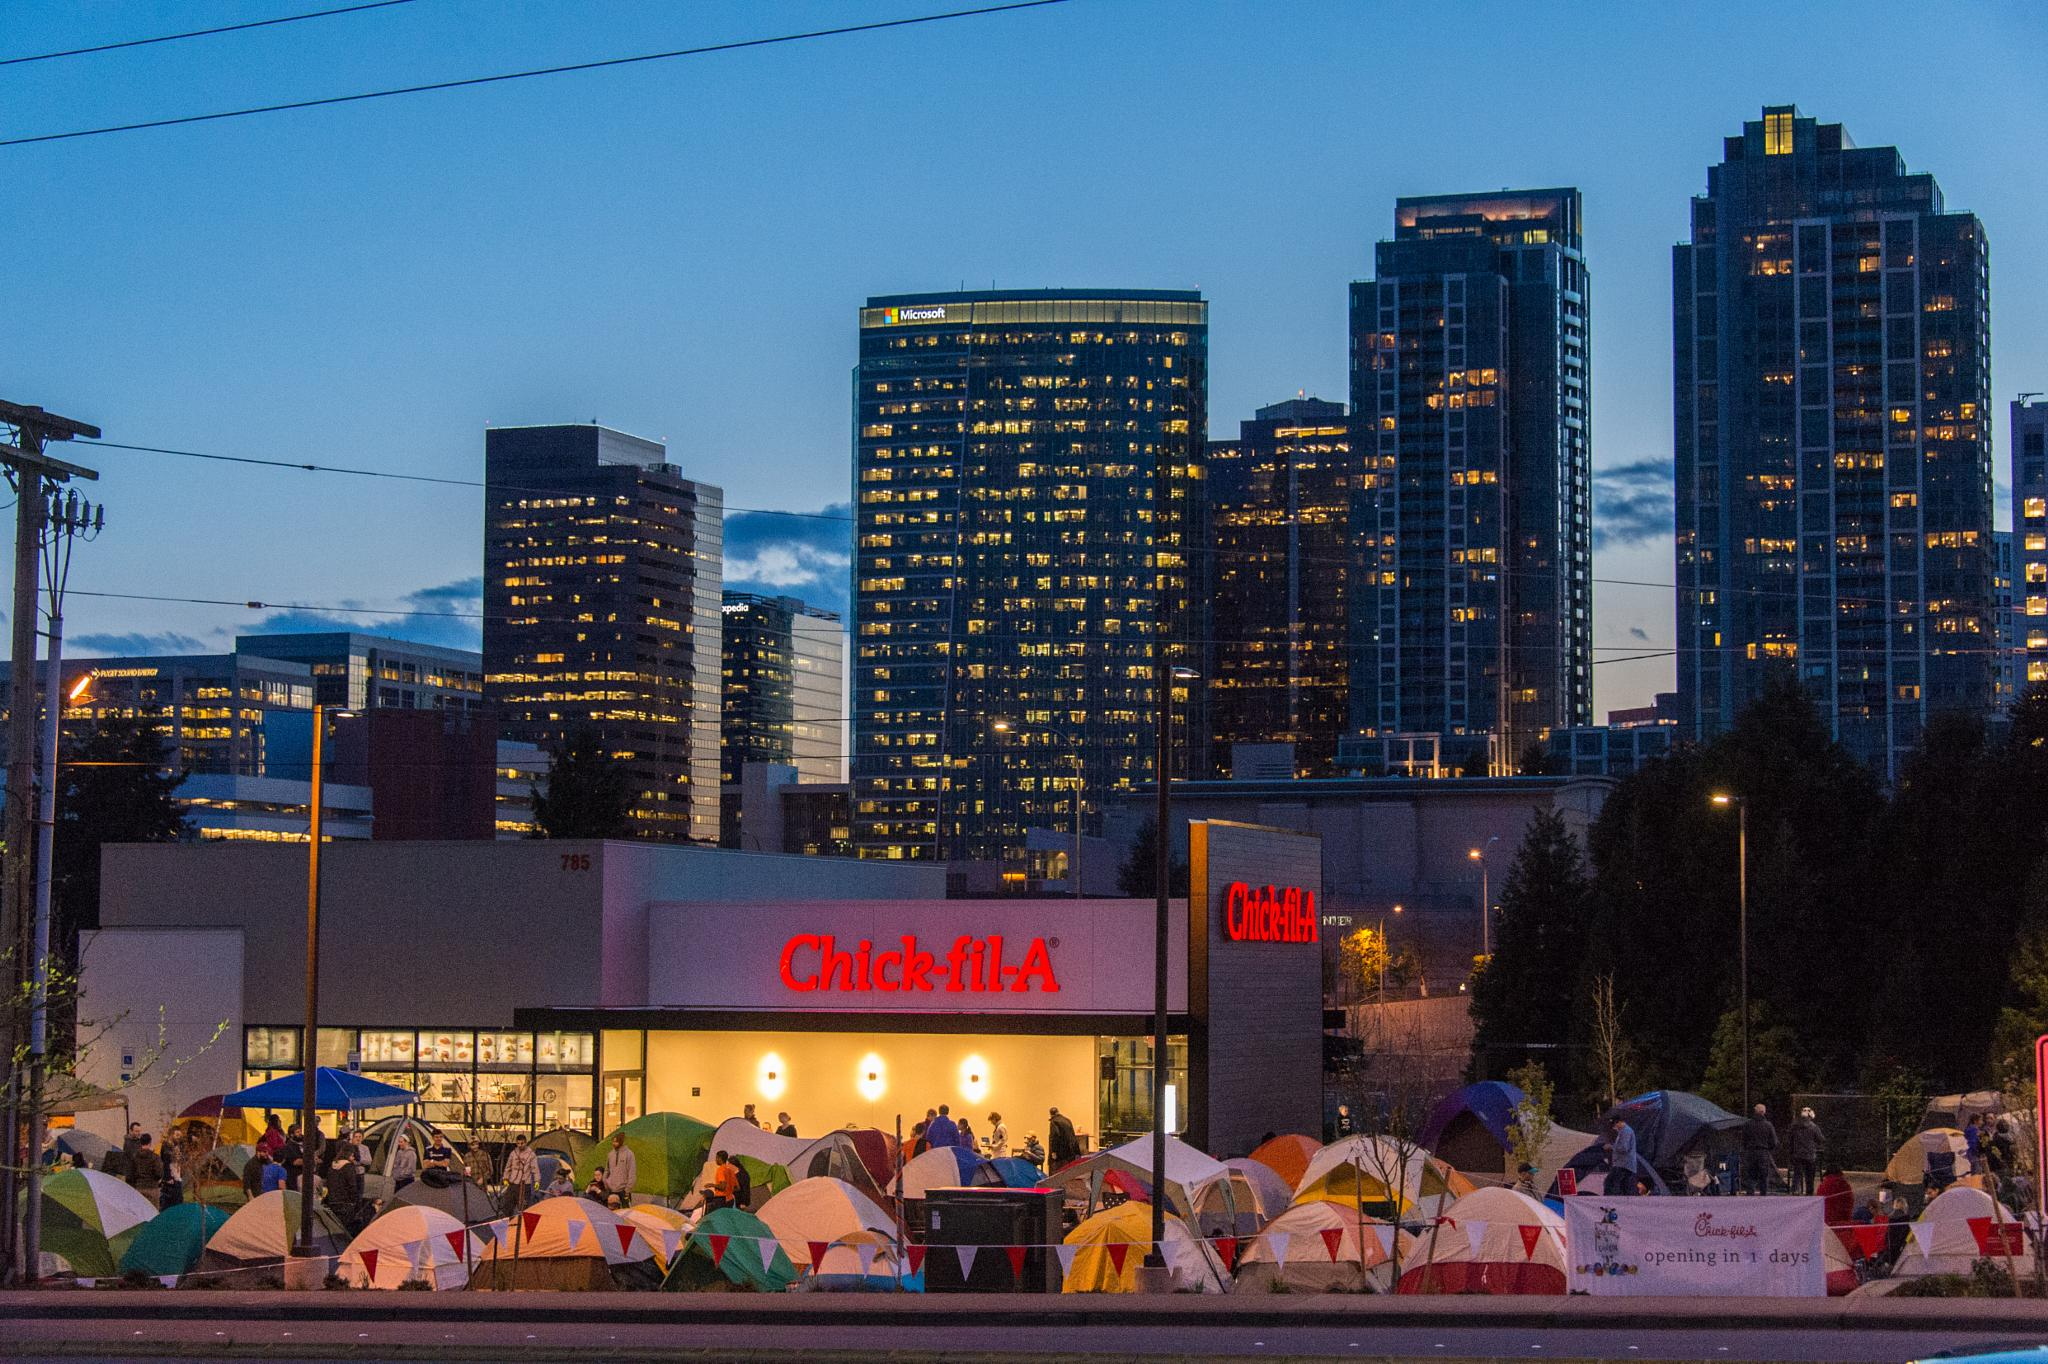 Grand opening for Chick-fil-A in Bellevue, WA by stanley.leary